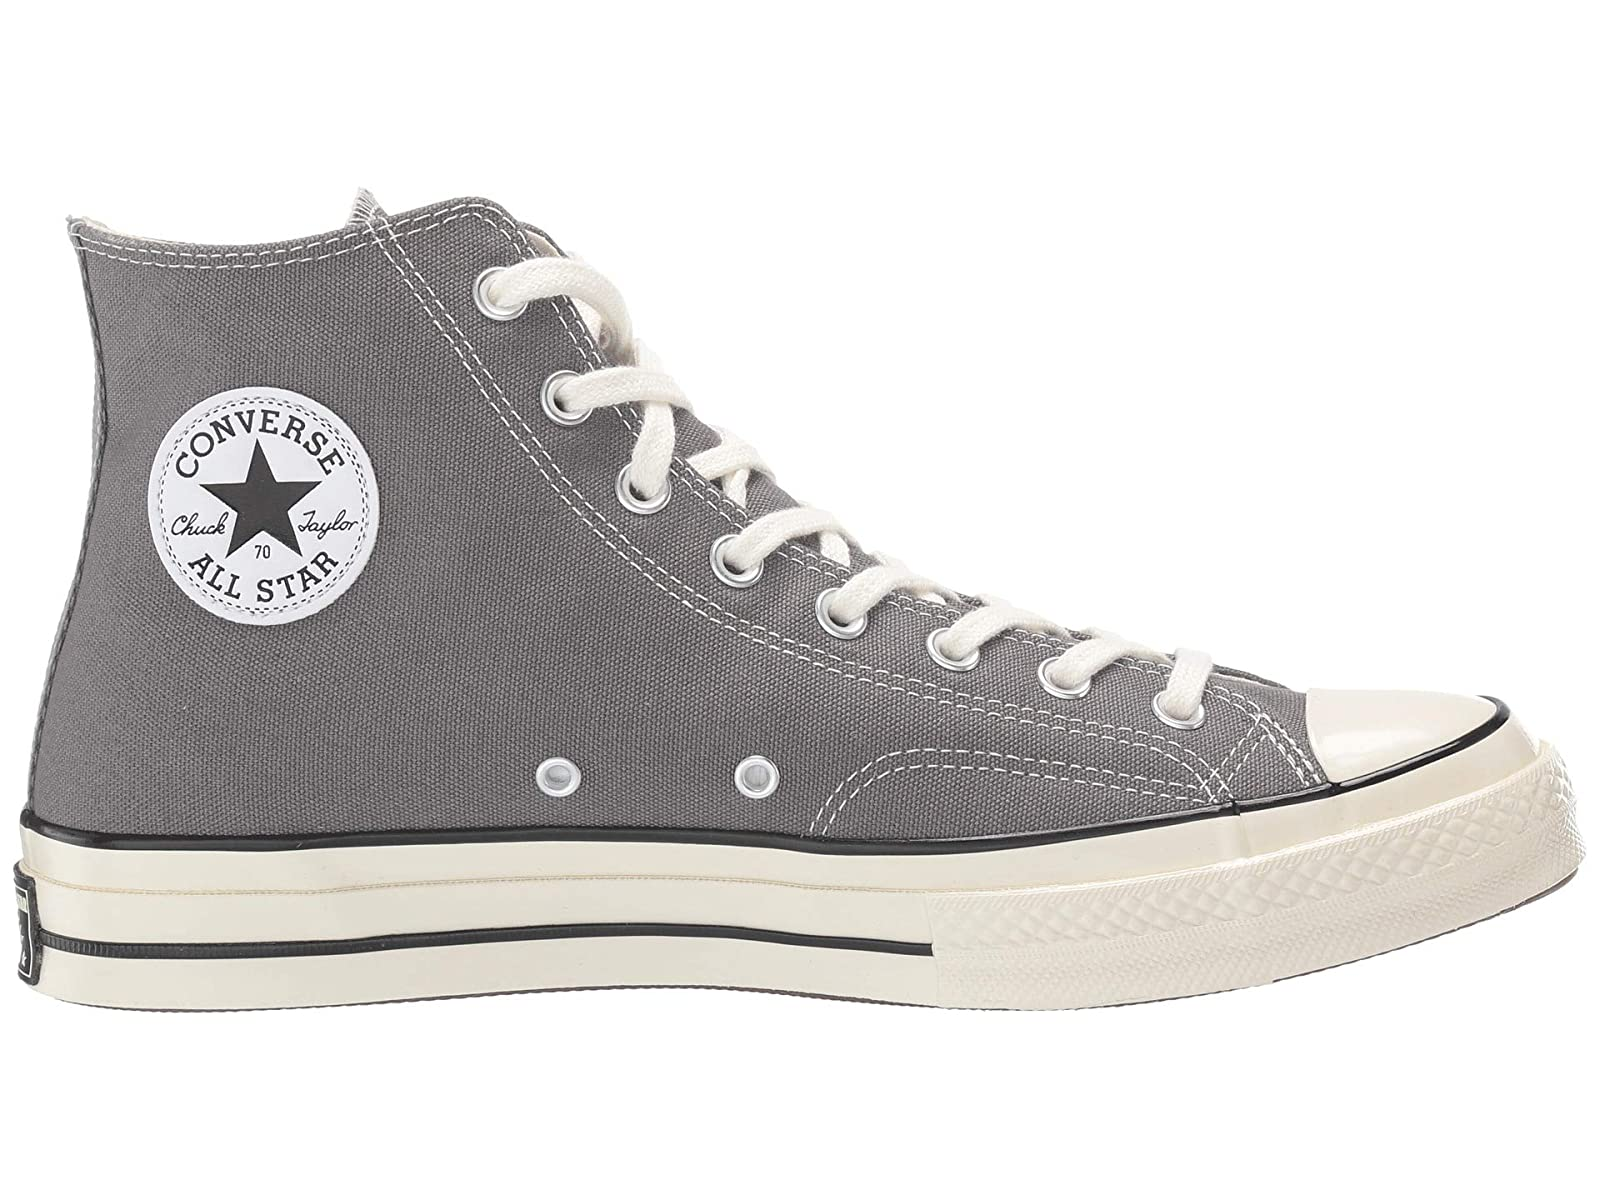 497dba2f97 Details about Adult Unisex Shoes Converse Chuck Taylor® All Star® '70 Hi